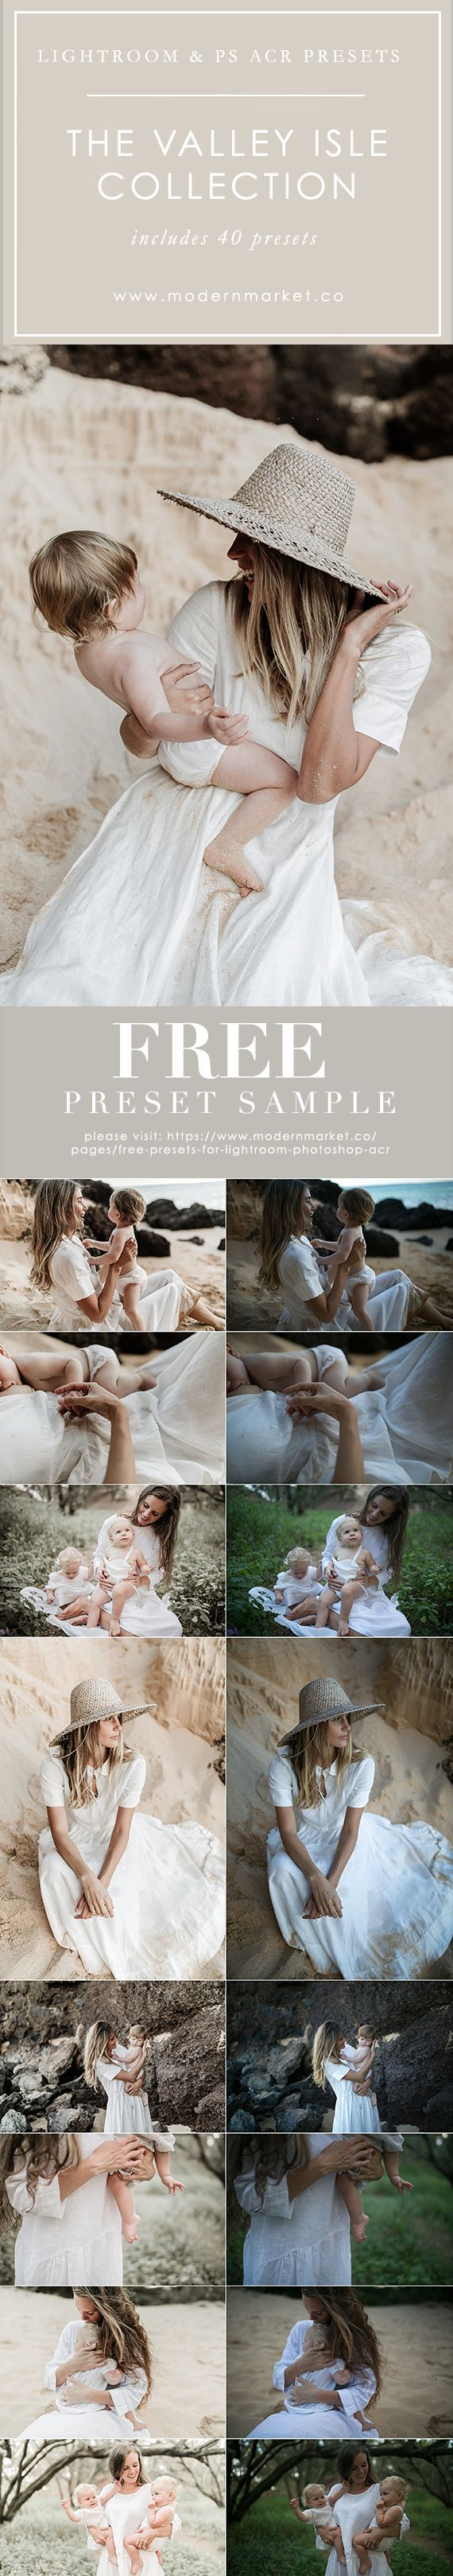 Must HAVE presets! Works in Lightroom & Photoshop. These presets know exactly how to highlight the beauty of each portrait by bringing out the dreamy lighting and organic tones. Inspired by the Valley Isle, Maui and my love for documenting my children. Muted organic tones, beautiful tan skin and that island vibe you see everywhere you go here!  DOWNLOAD FREE SAMPLE PRESETS BEFORE GETTING THE WHOLE COLLECTION!